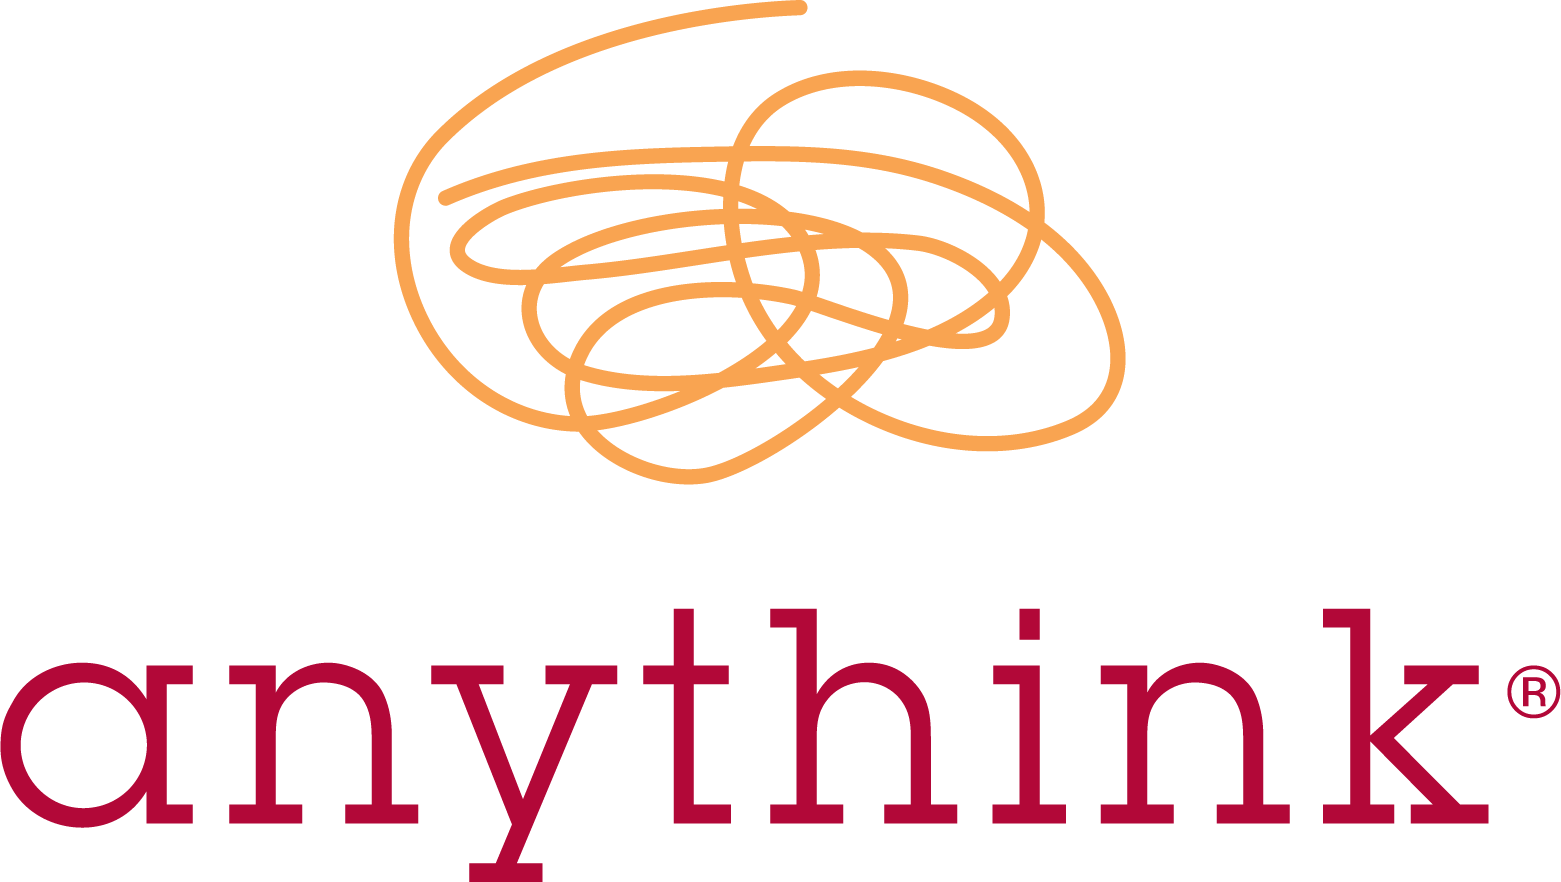 Logo for Anythink - red text and orange doodle on white background.